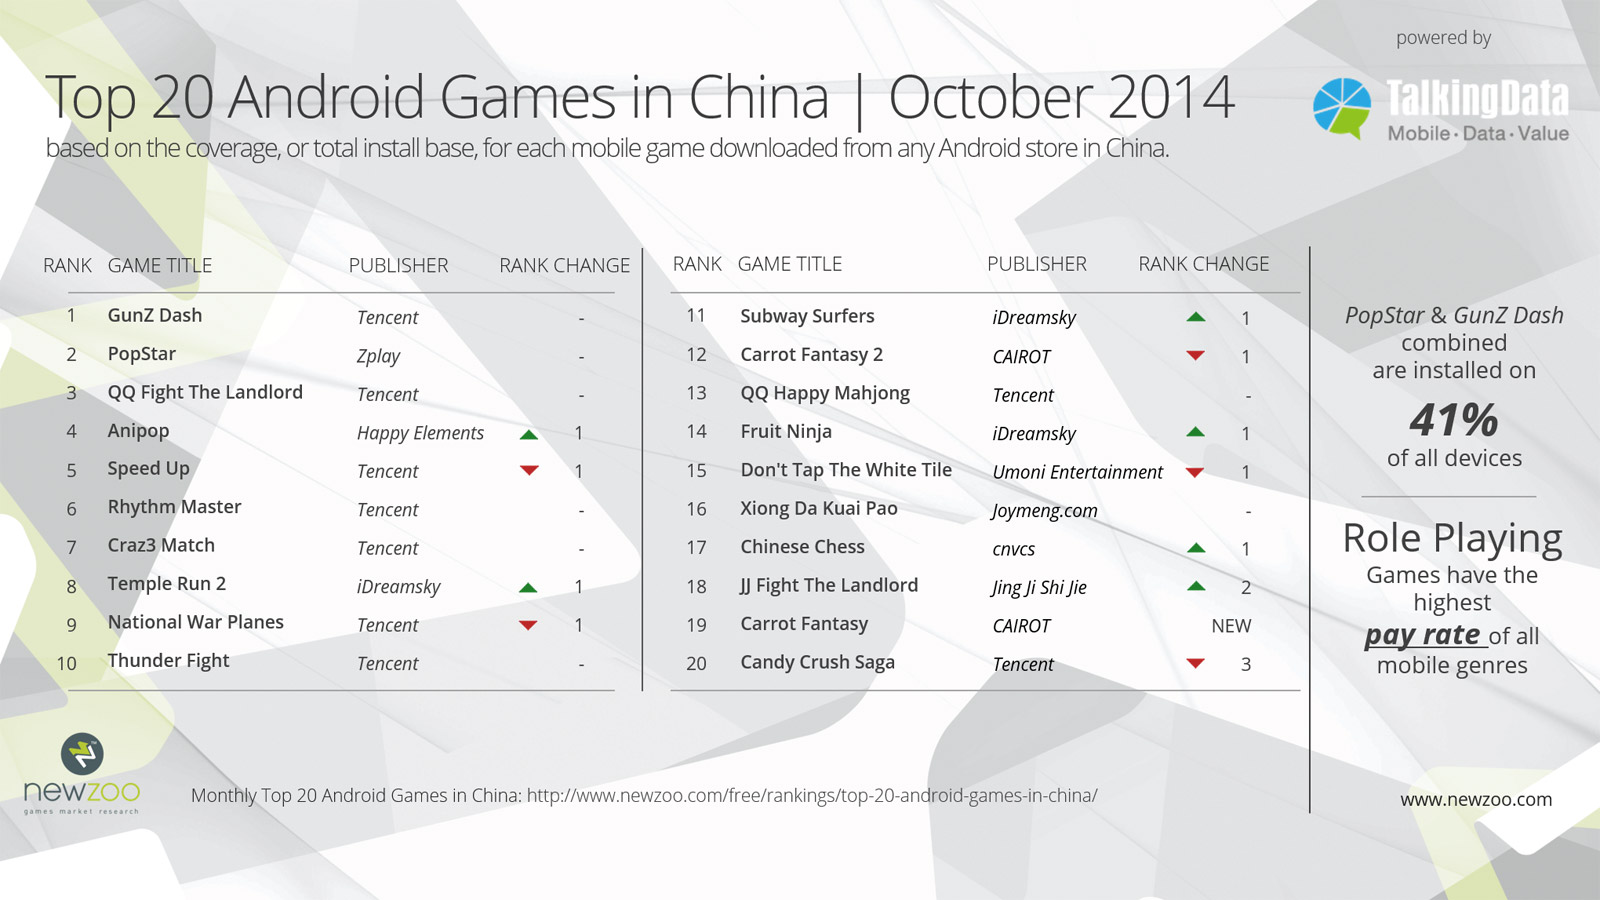 Newzoo_Top20_Android_Games_China_Oct2014